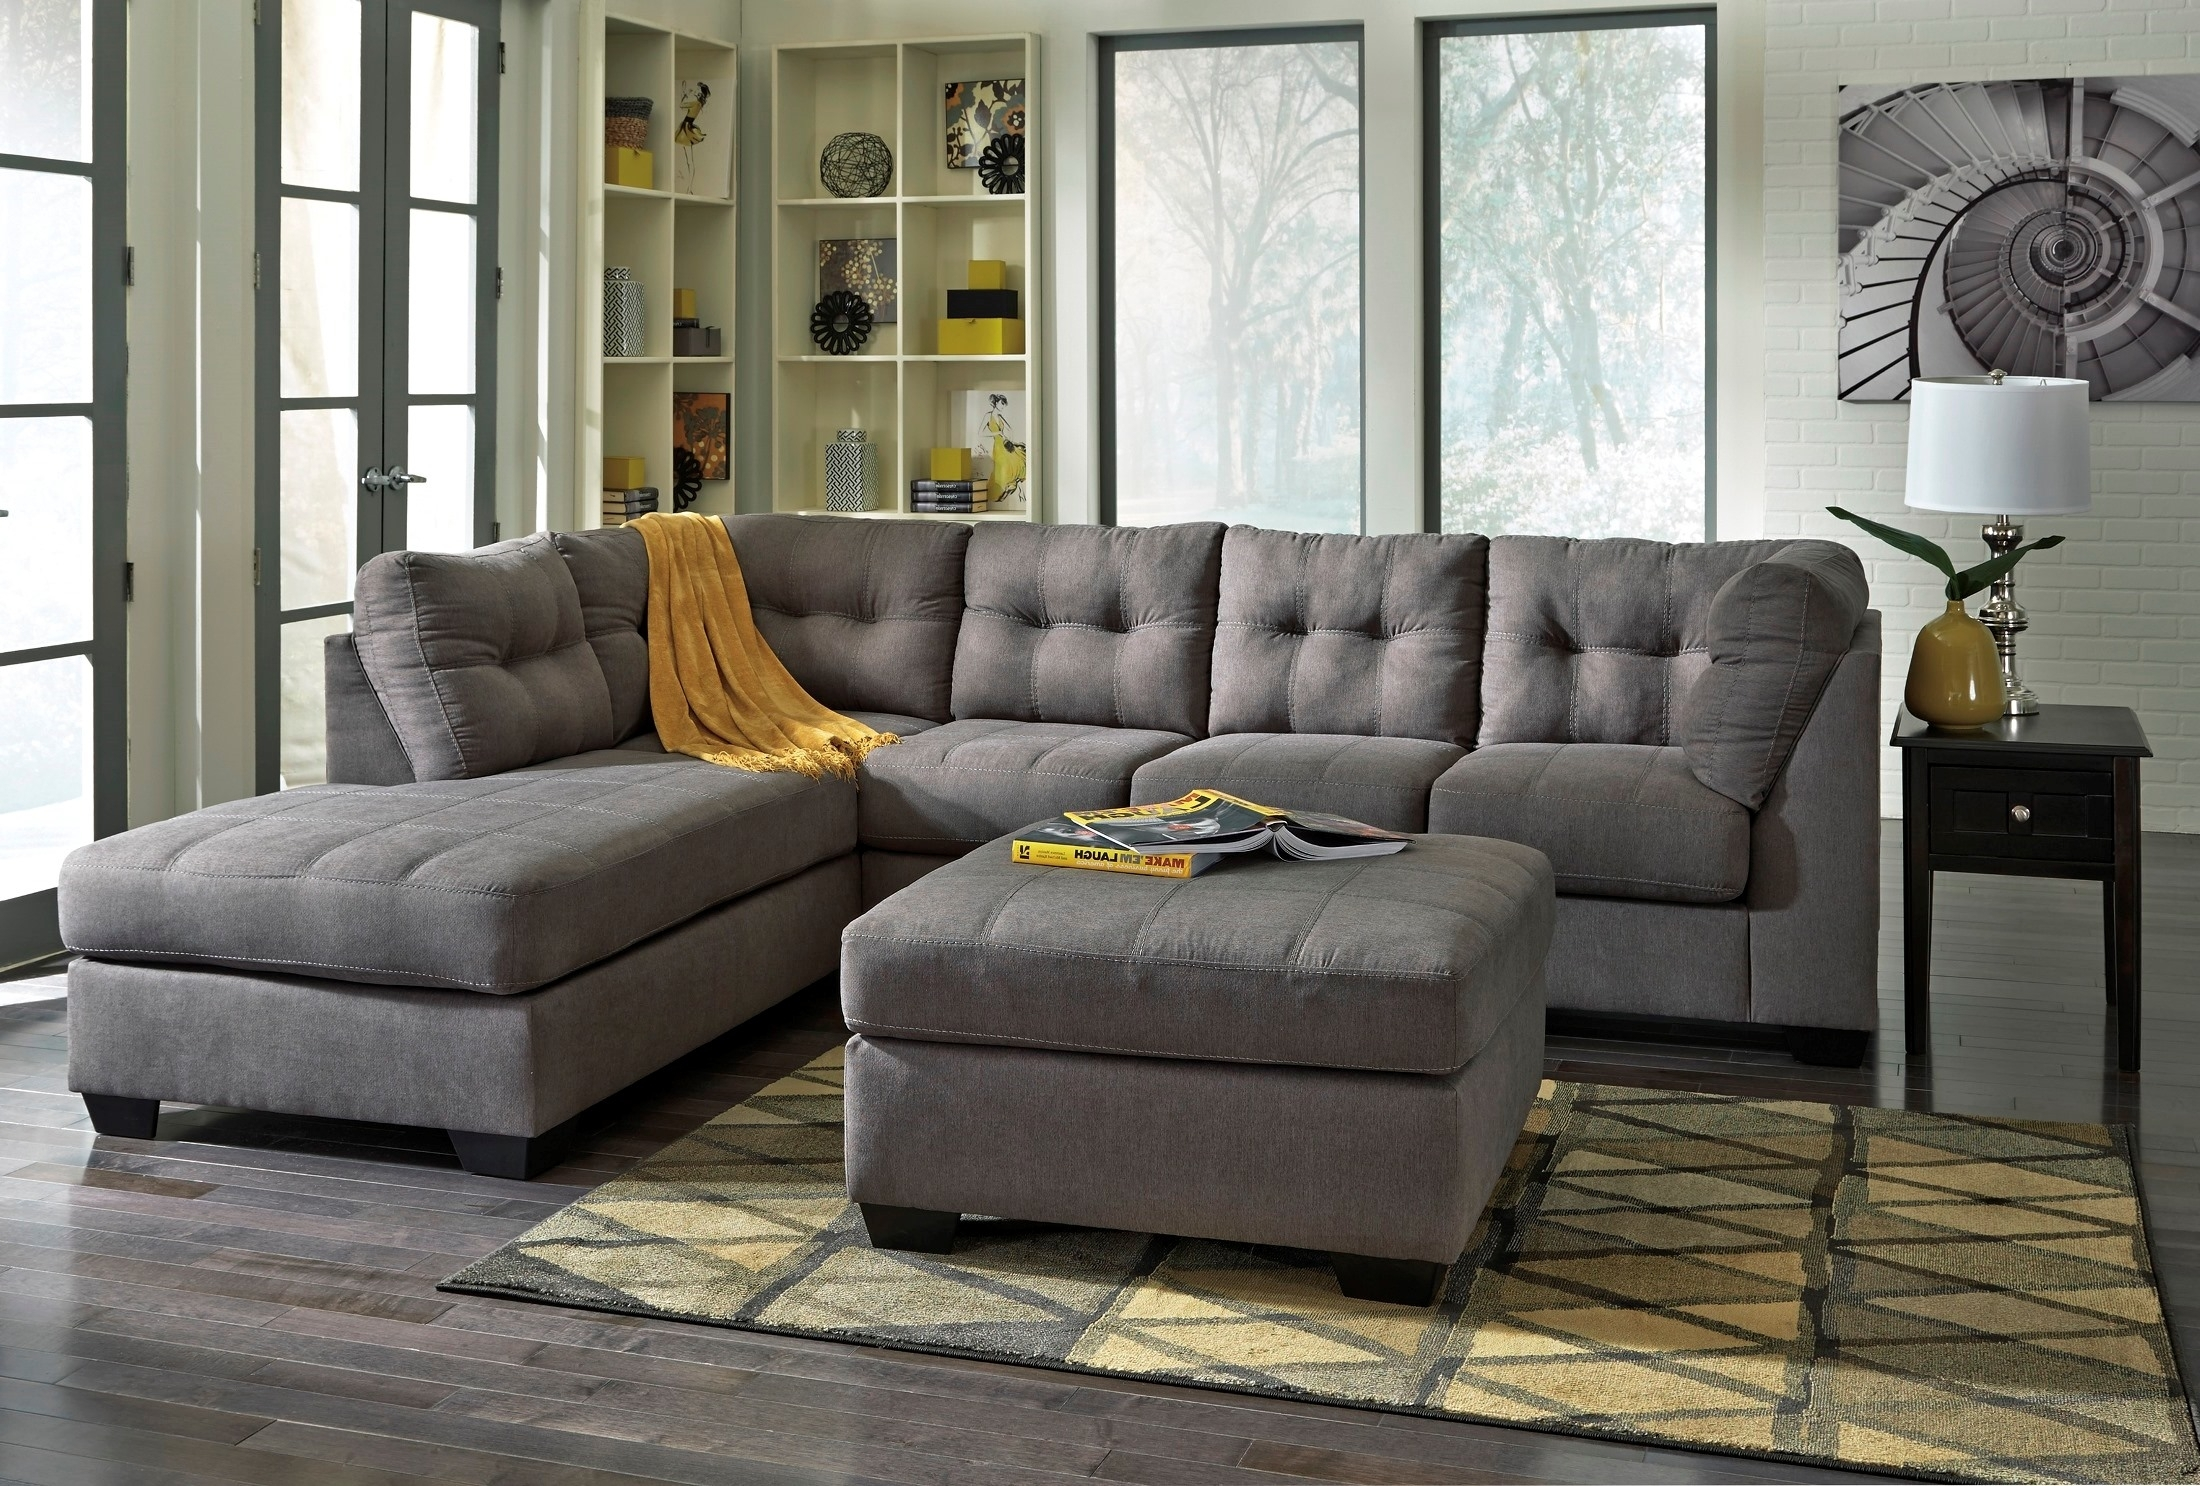 Signature Designashley Maier Charcoal Laf Sectional - Maier within Tess 2 Piece Power Reclining Sectionals With Laf Chaise (Image 18 of 30)